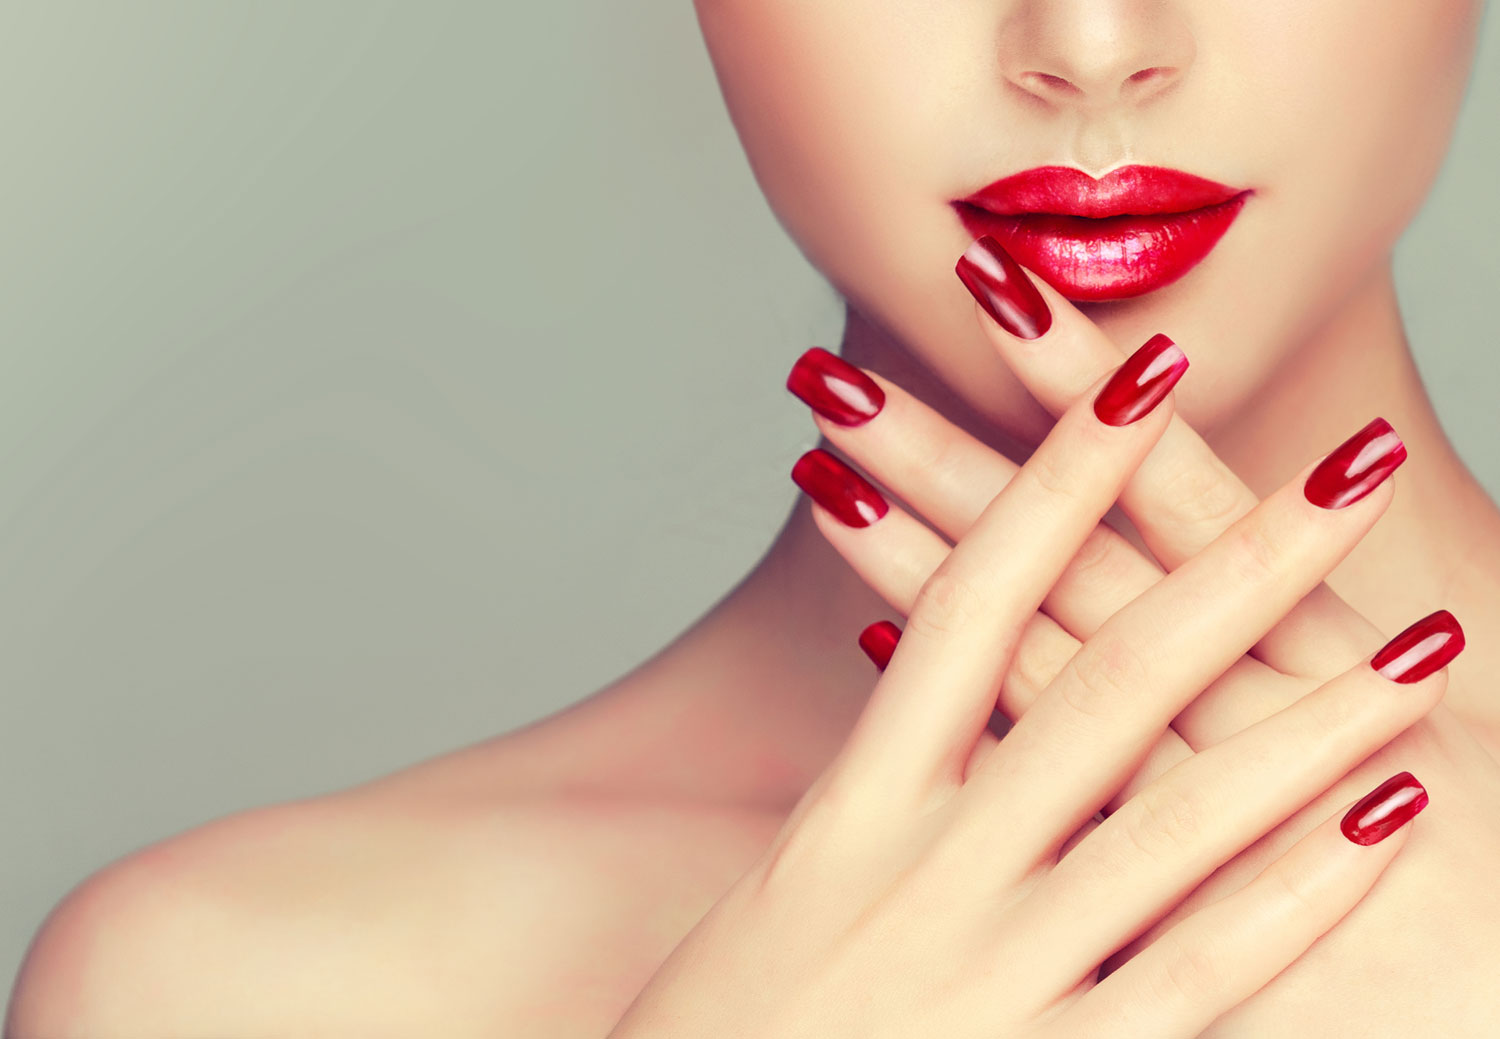 Best Manicure and Pedicure Salon in Orlando, Fl